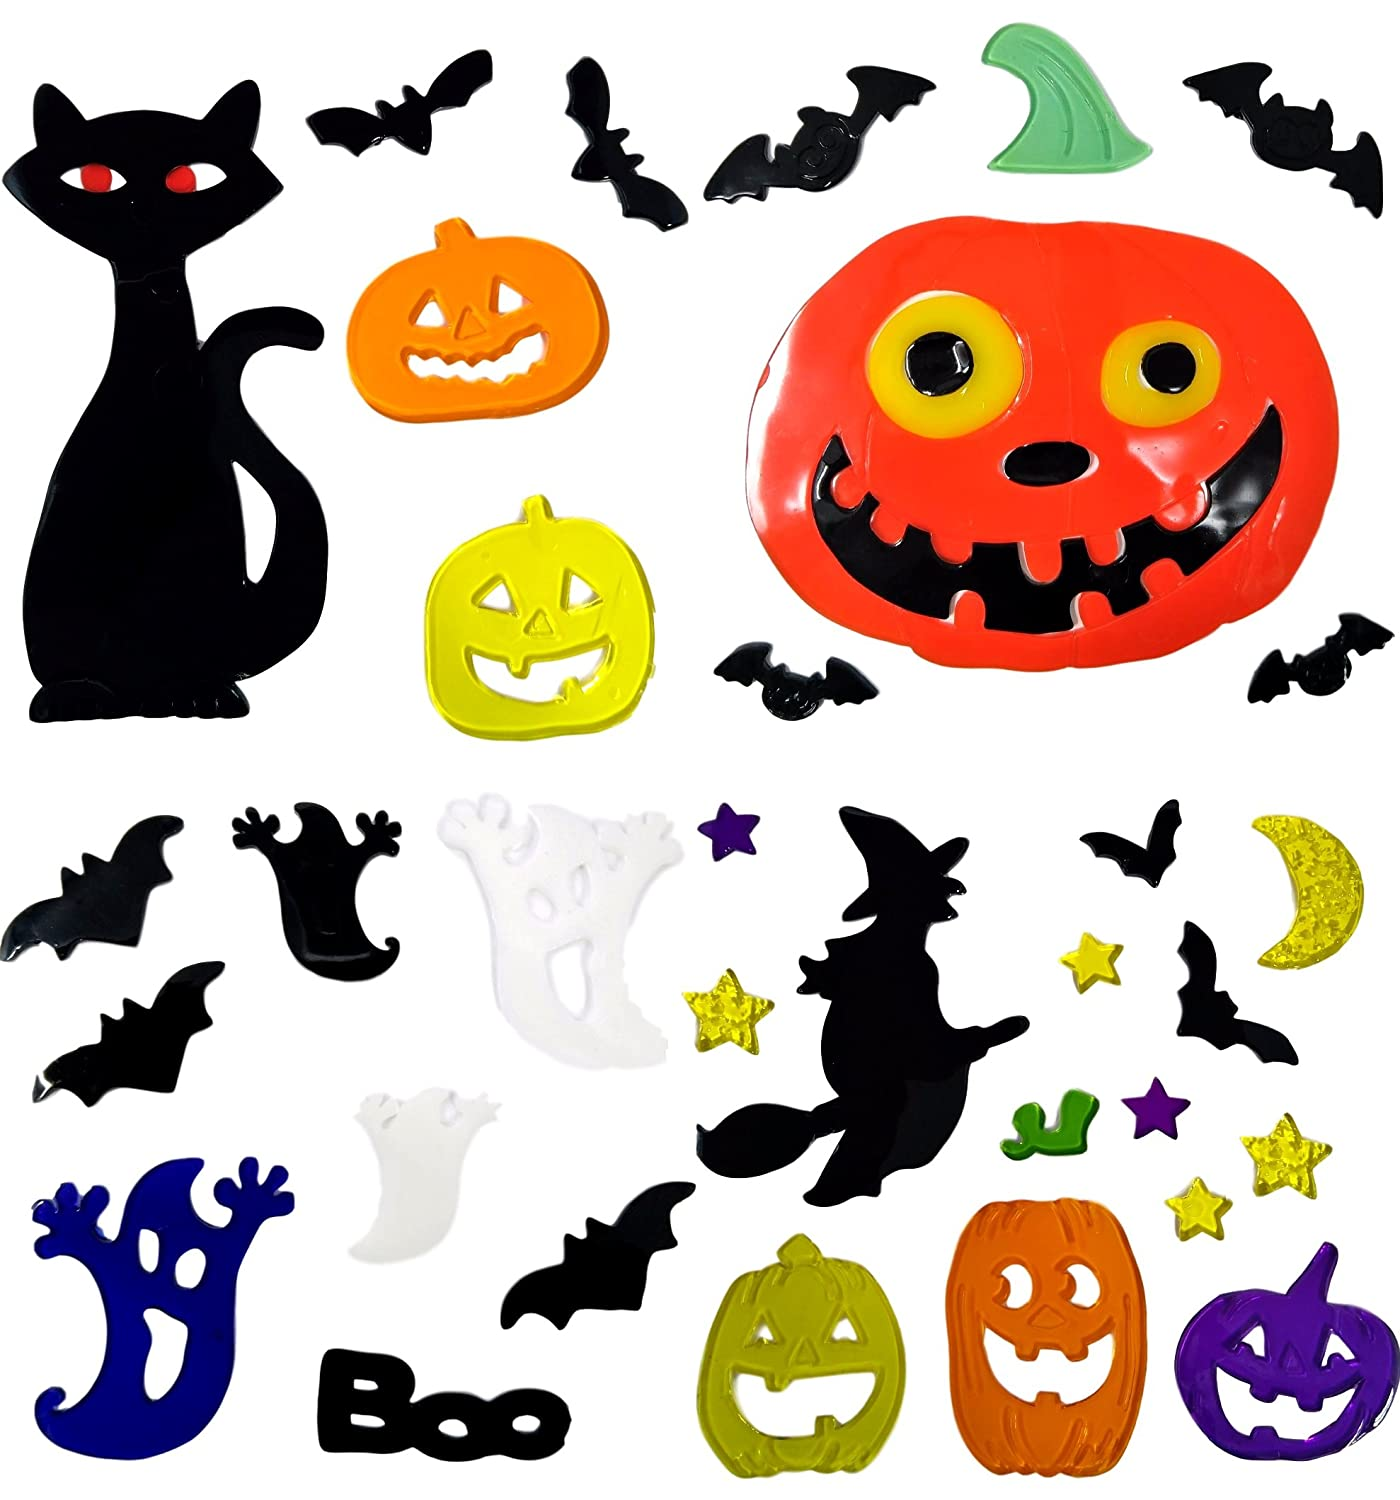 Atlona 4 Sheets of Halloween Window Stickers - Gel Clings Glass Decoration Tallon